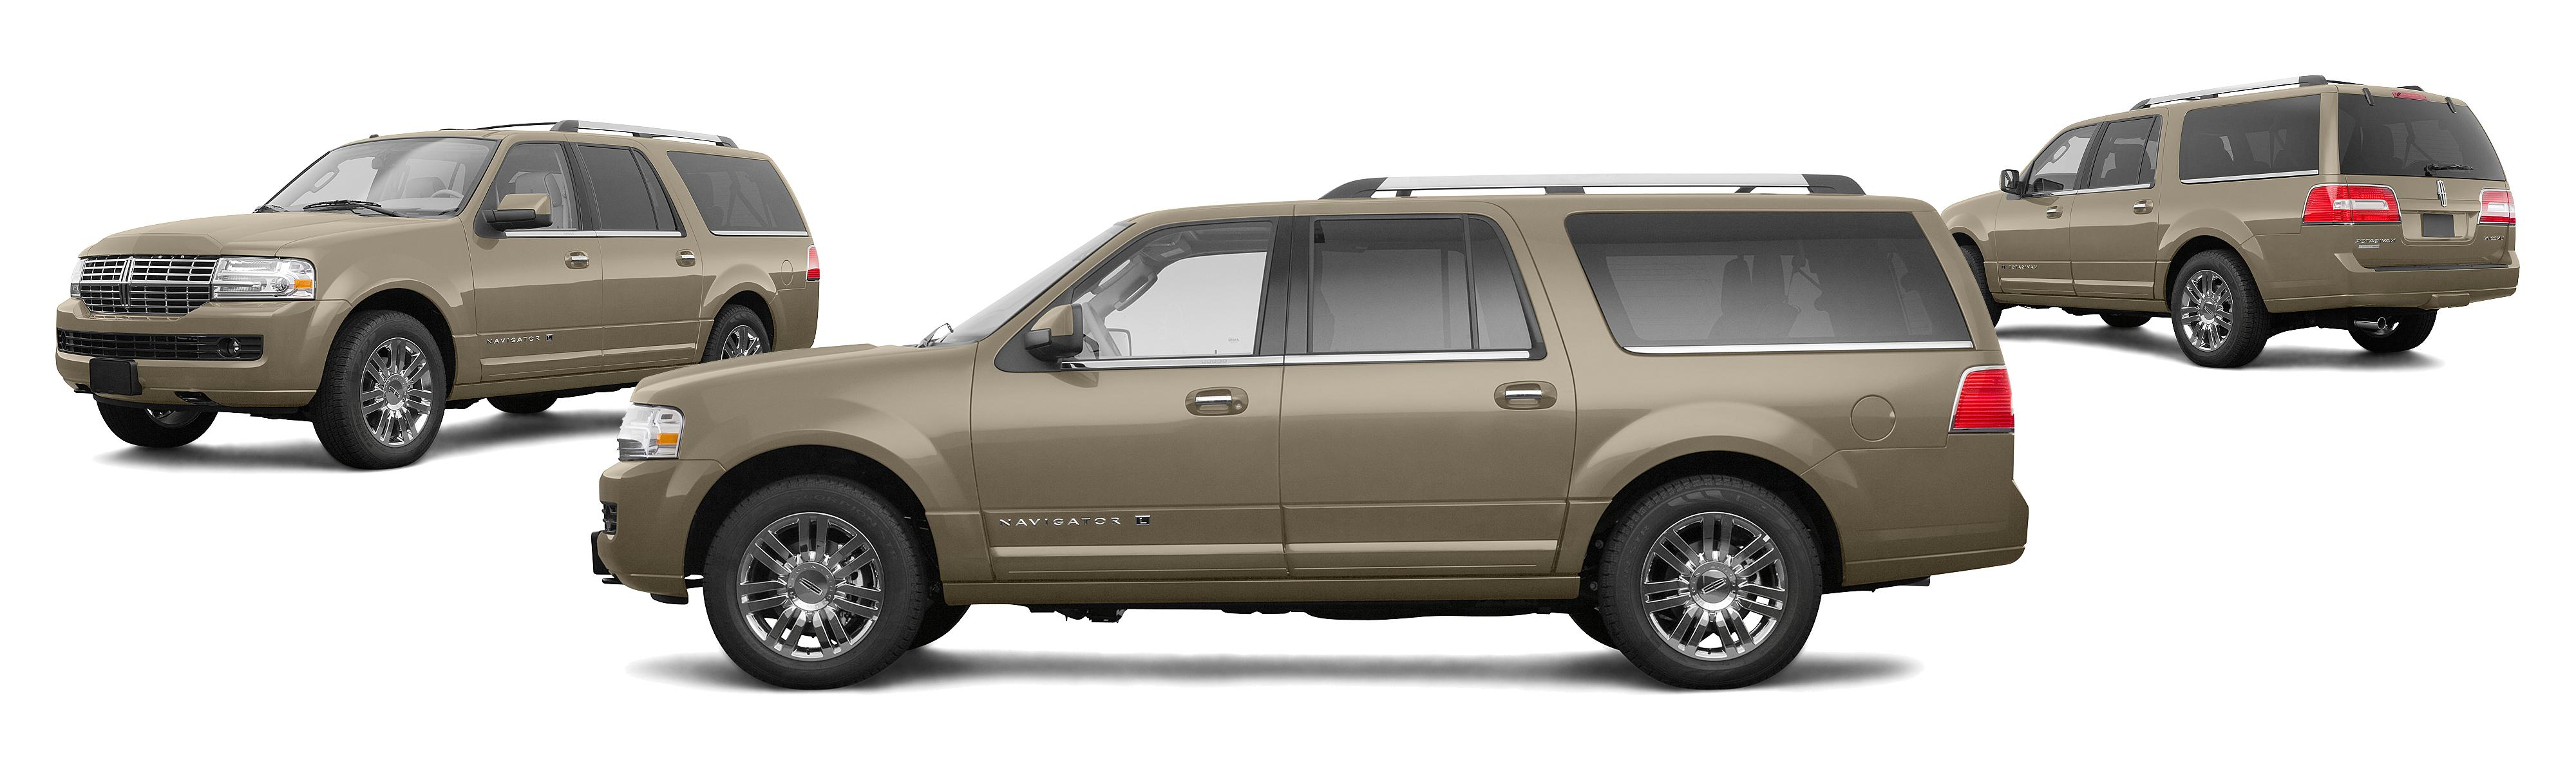 2008-lincoln-navigator-l-4dr-suv-light-french-silk-metallic-composite-large Take A Look About Lincoln 2008